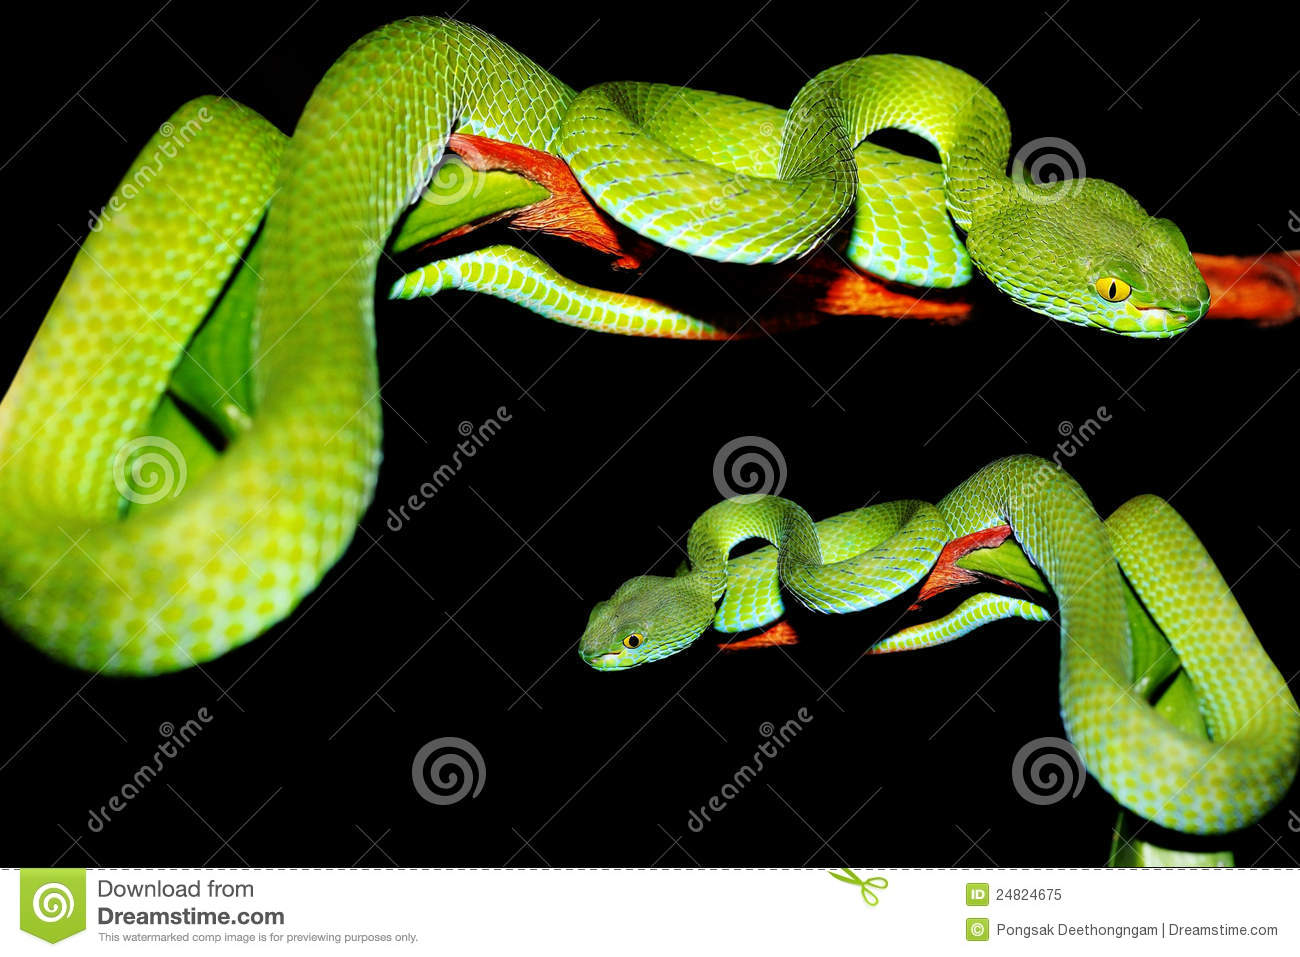 Green Pit Viper clipart #8, Download drawings